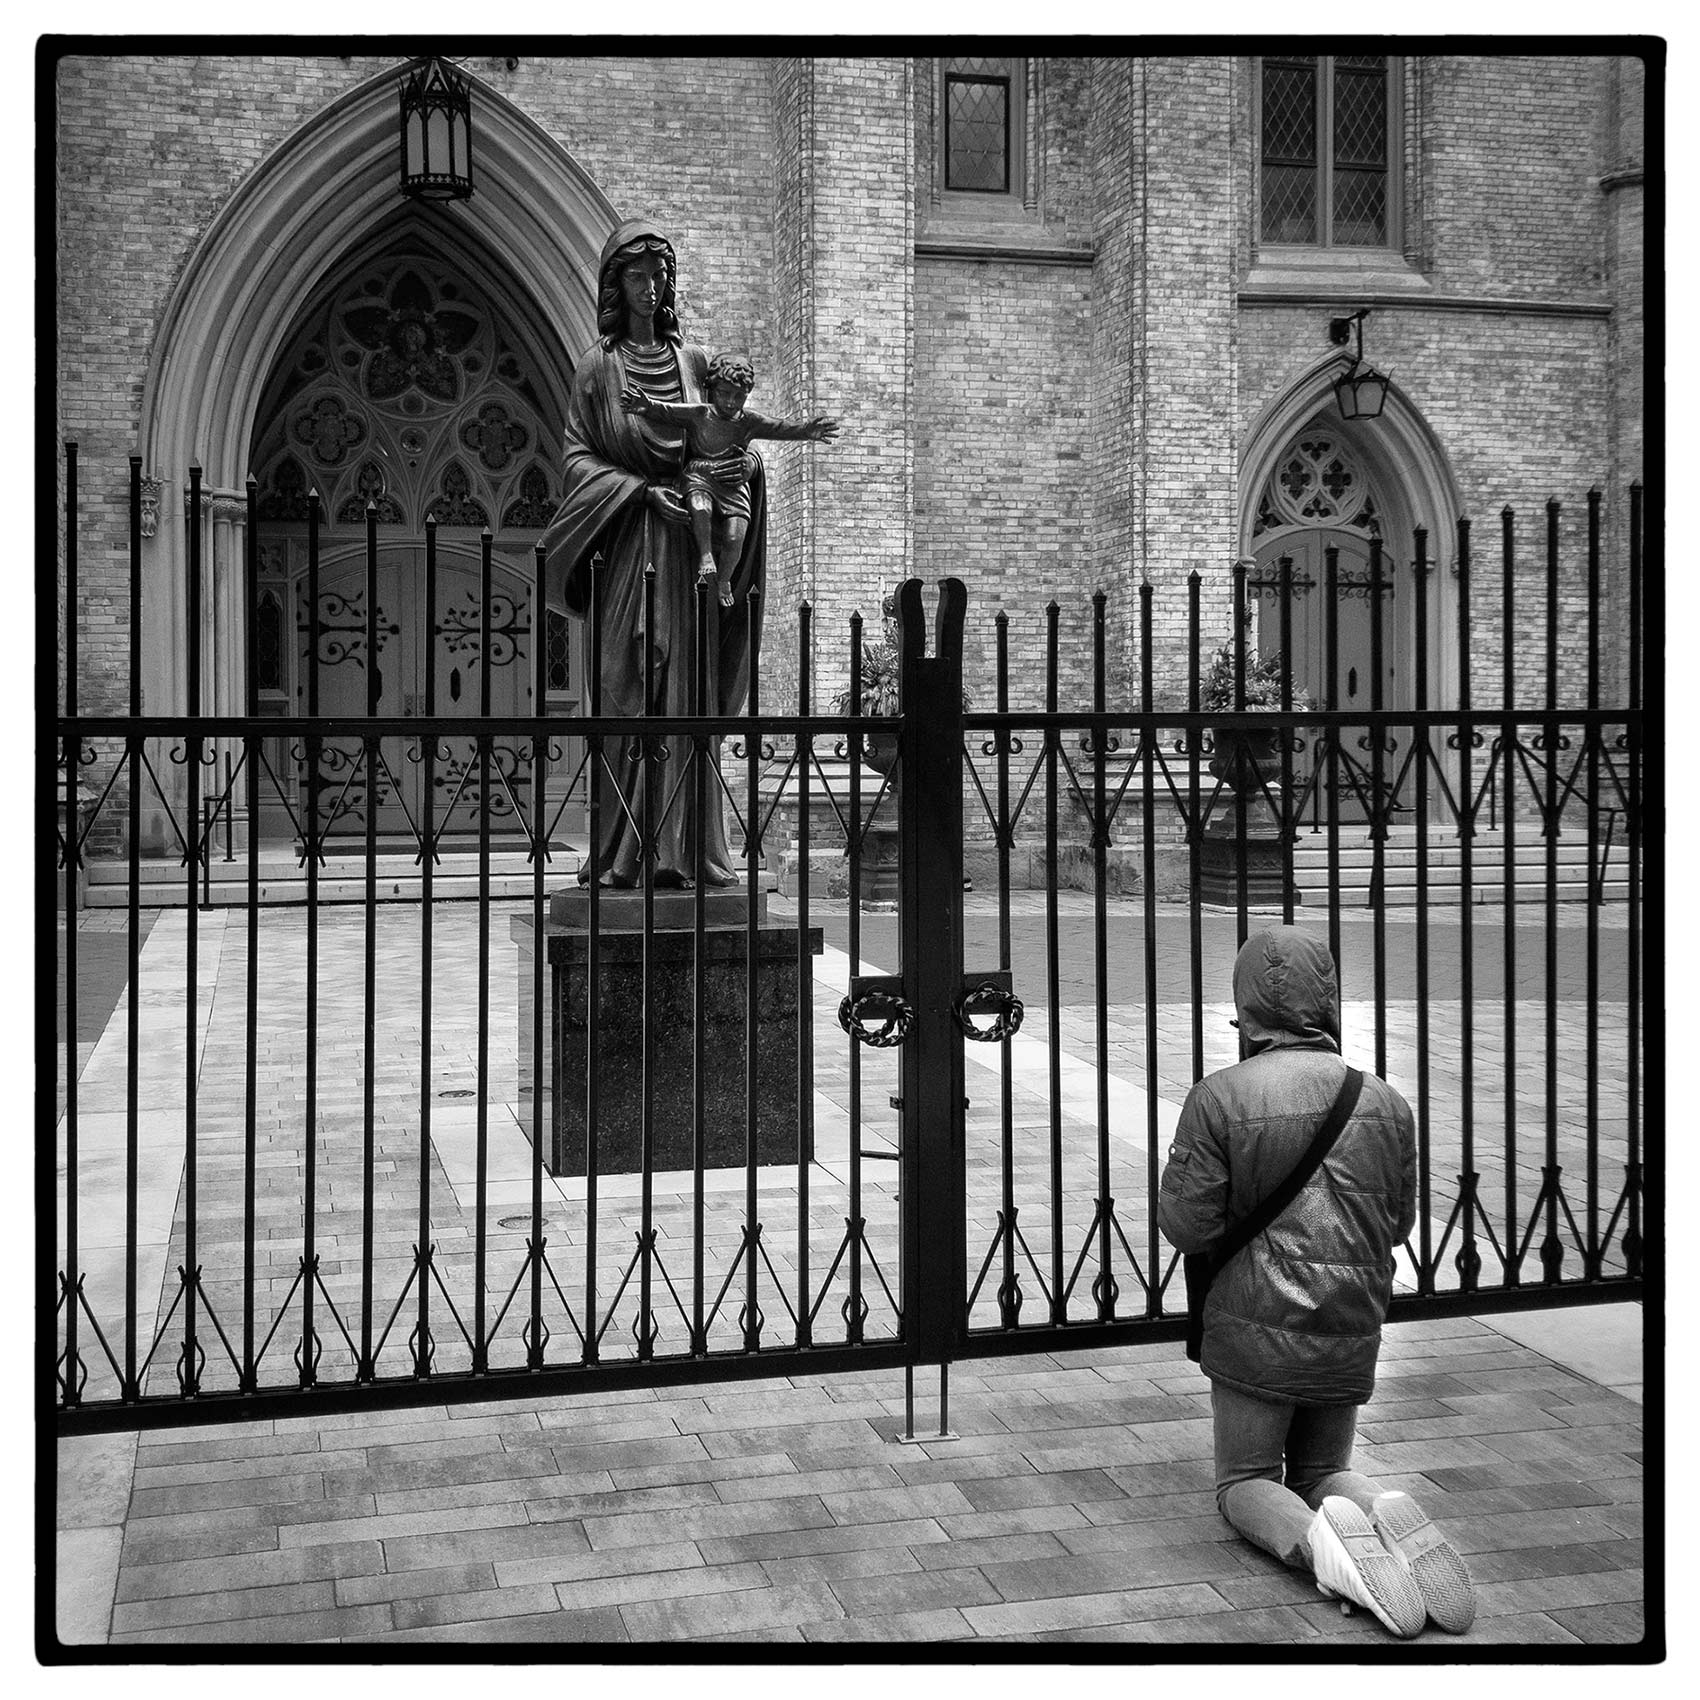 a-woman-prays-in-front-of-a -closed-church-during-the-pandemic-by-Toronto-portrait-photographer-John-Hryniuk